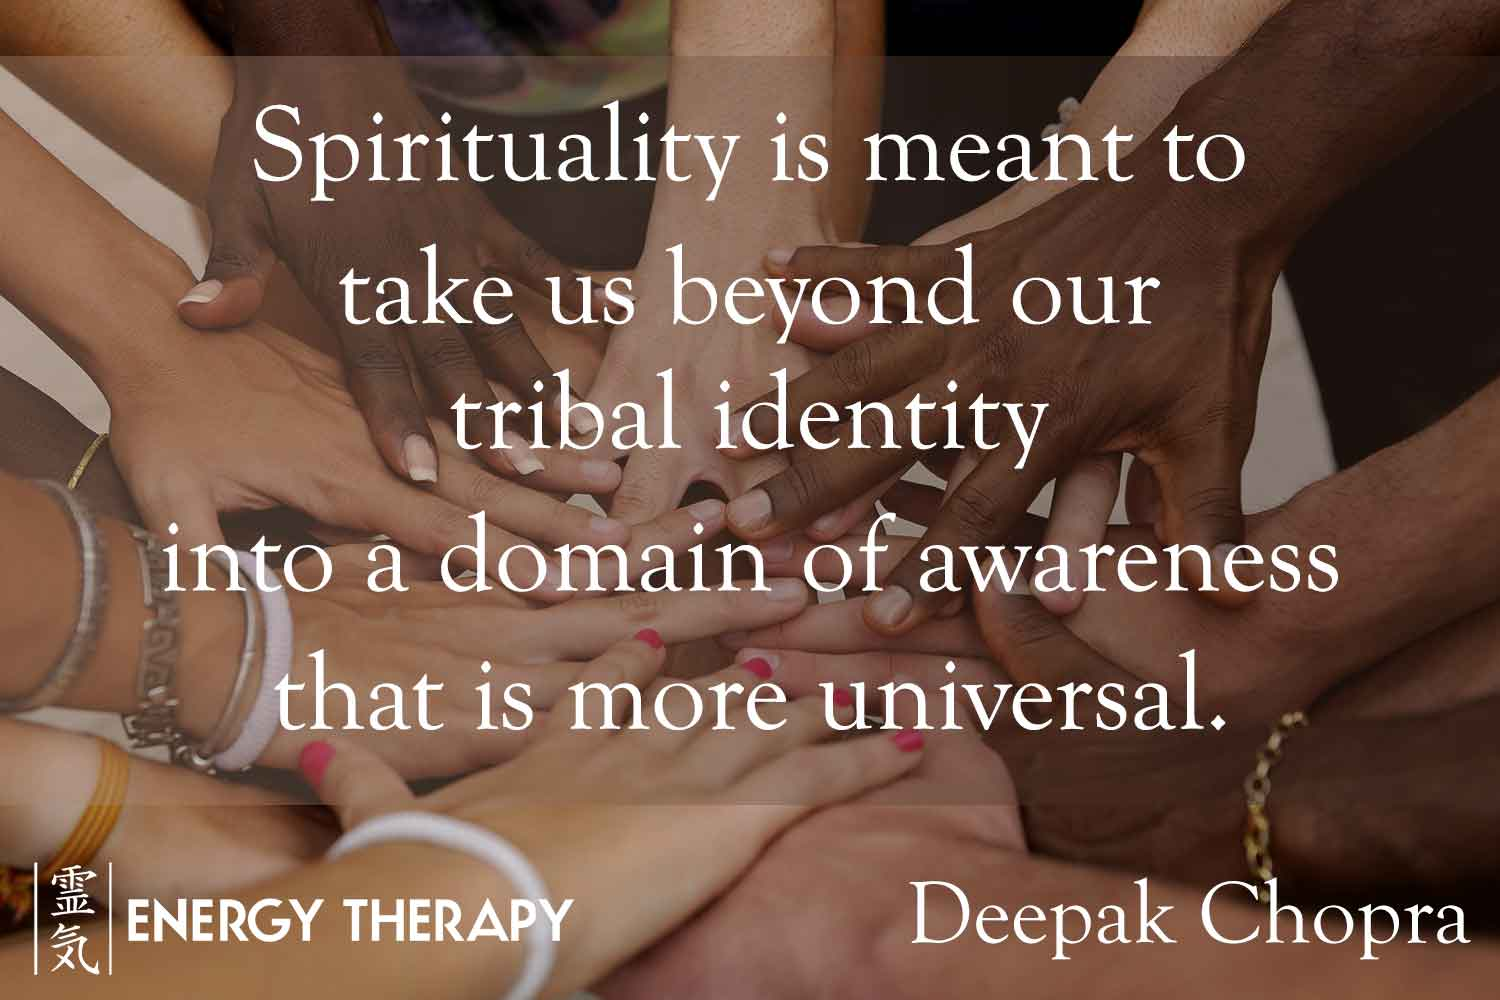 deepak chopra - spirituality is meant to take us beyond our tribal identity